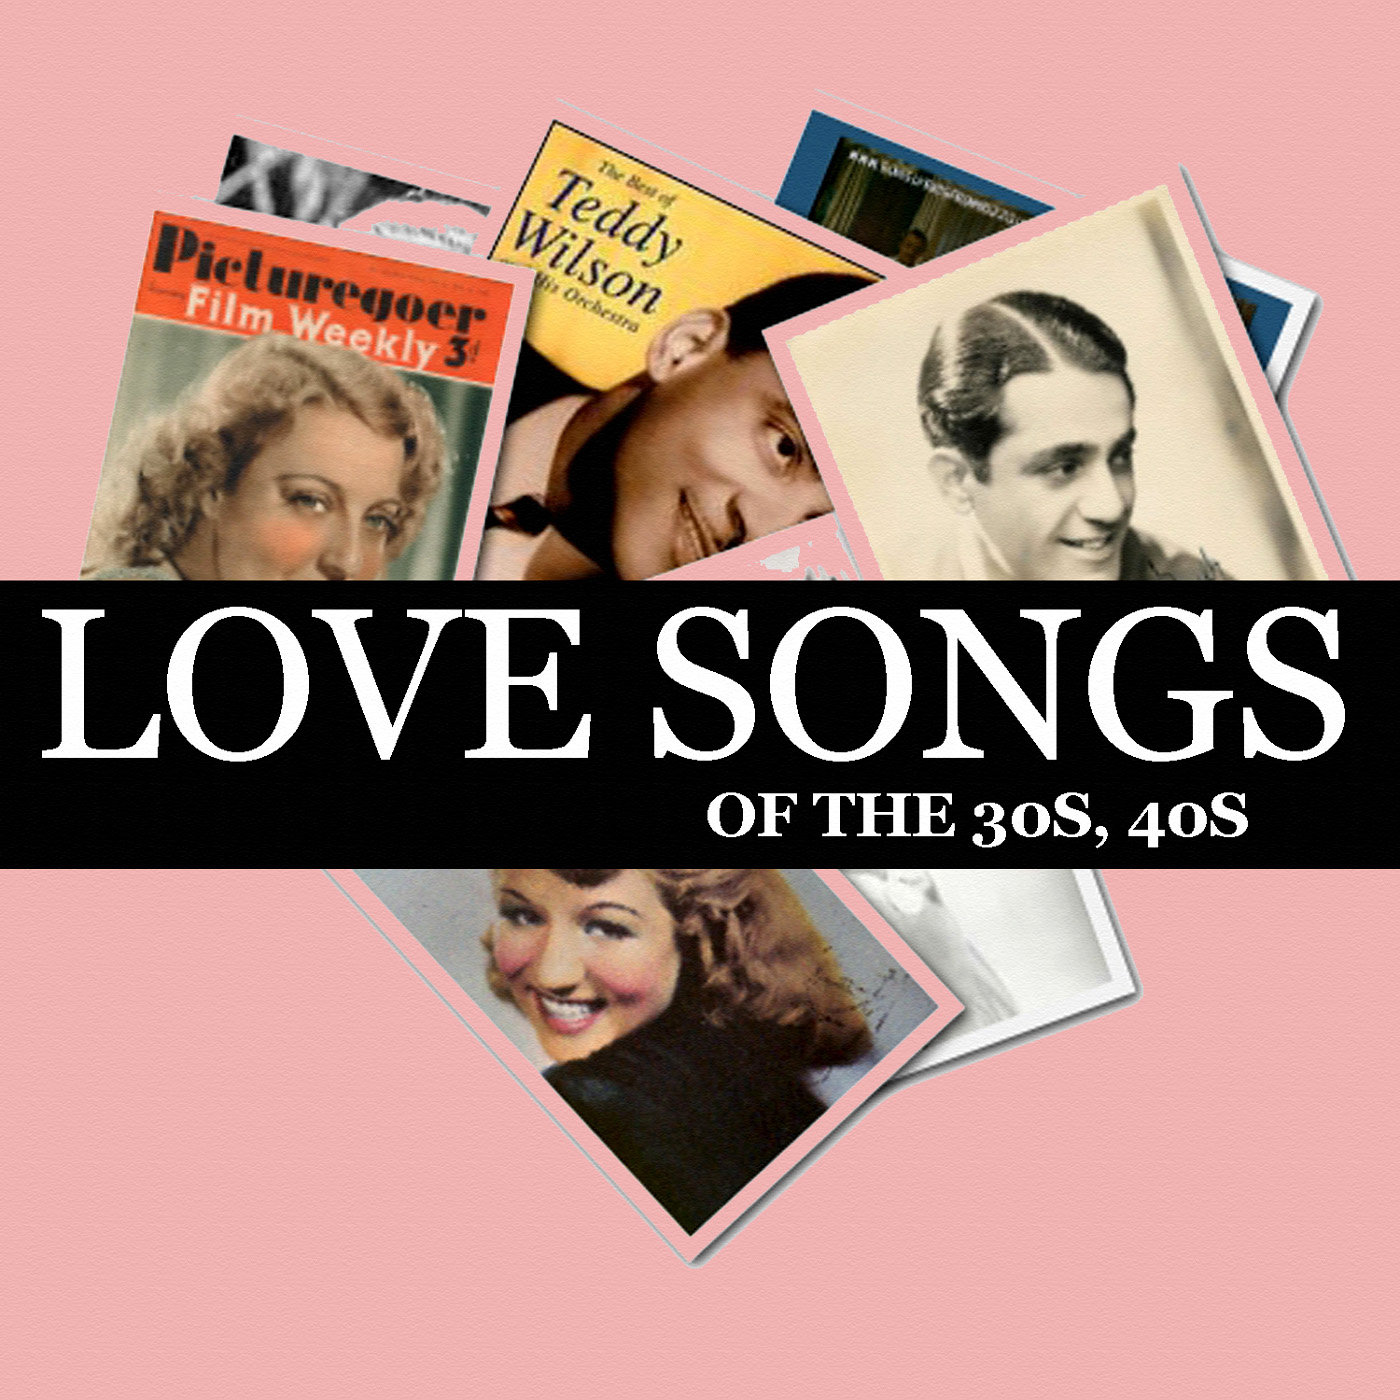 Love Songs of the 30s, 40s Remastered музыка из фильма